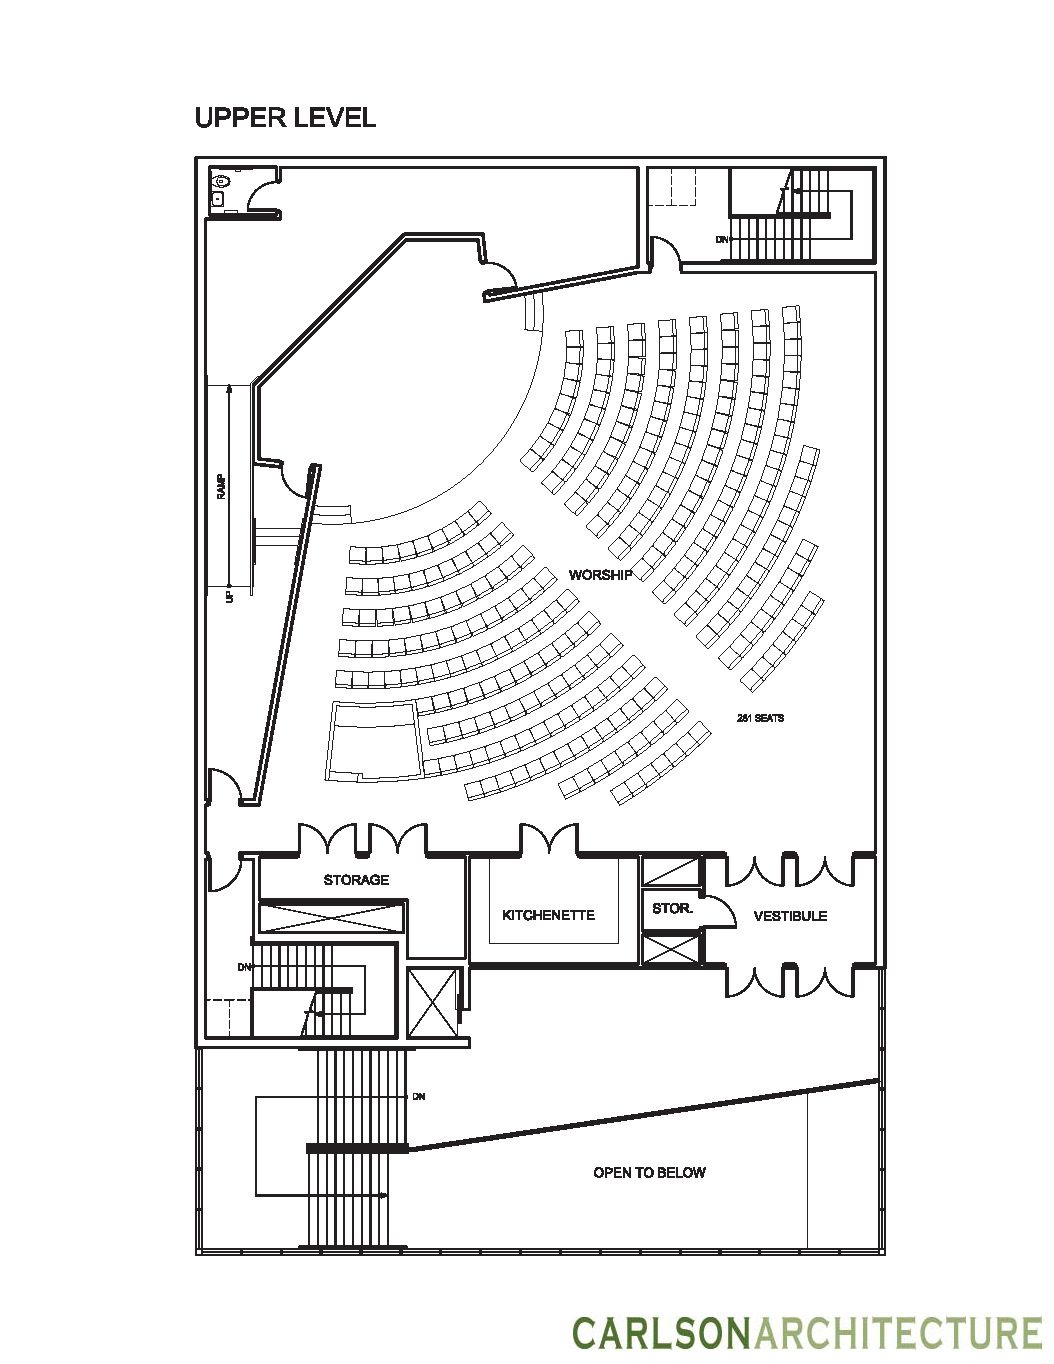 Small church floor plan church building plan church for Floor plan church